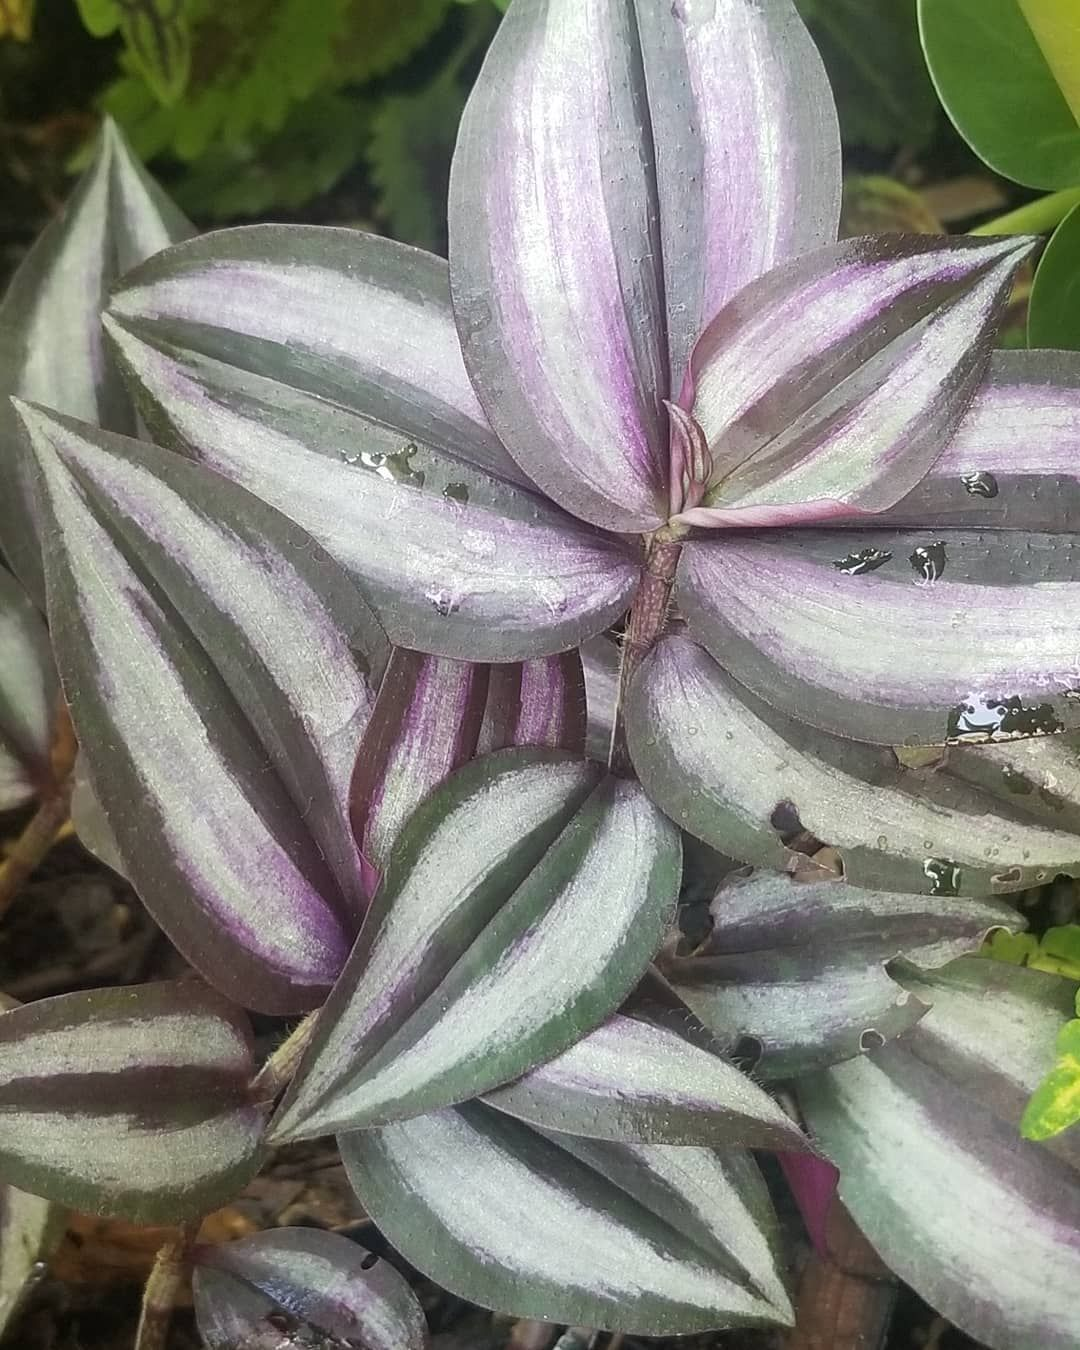 Lots of new growth!! ð Spiderworst (Wandering Jew) And Elephant Ears  #pittsburghplants #plants #plantnursery #pittsburghlandscaping #plantinstallation #wedoplants #plantsmakeyouhappy #tropics #tropicals #tropicalplants #gardeners #pittsburghgardens #veggieplants #plantsyoucaneat #plantlady #smallbusiness #lowprice #bogo #green #pittsburgh #412 #elephantearsandtropicals Lots of new growth!! ð Spiderworst (Wandering Jew) And Elephant Ears  #pittsburghplants #plants #plantnursery #pittsburghland #wanderingjewplant